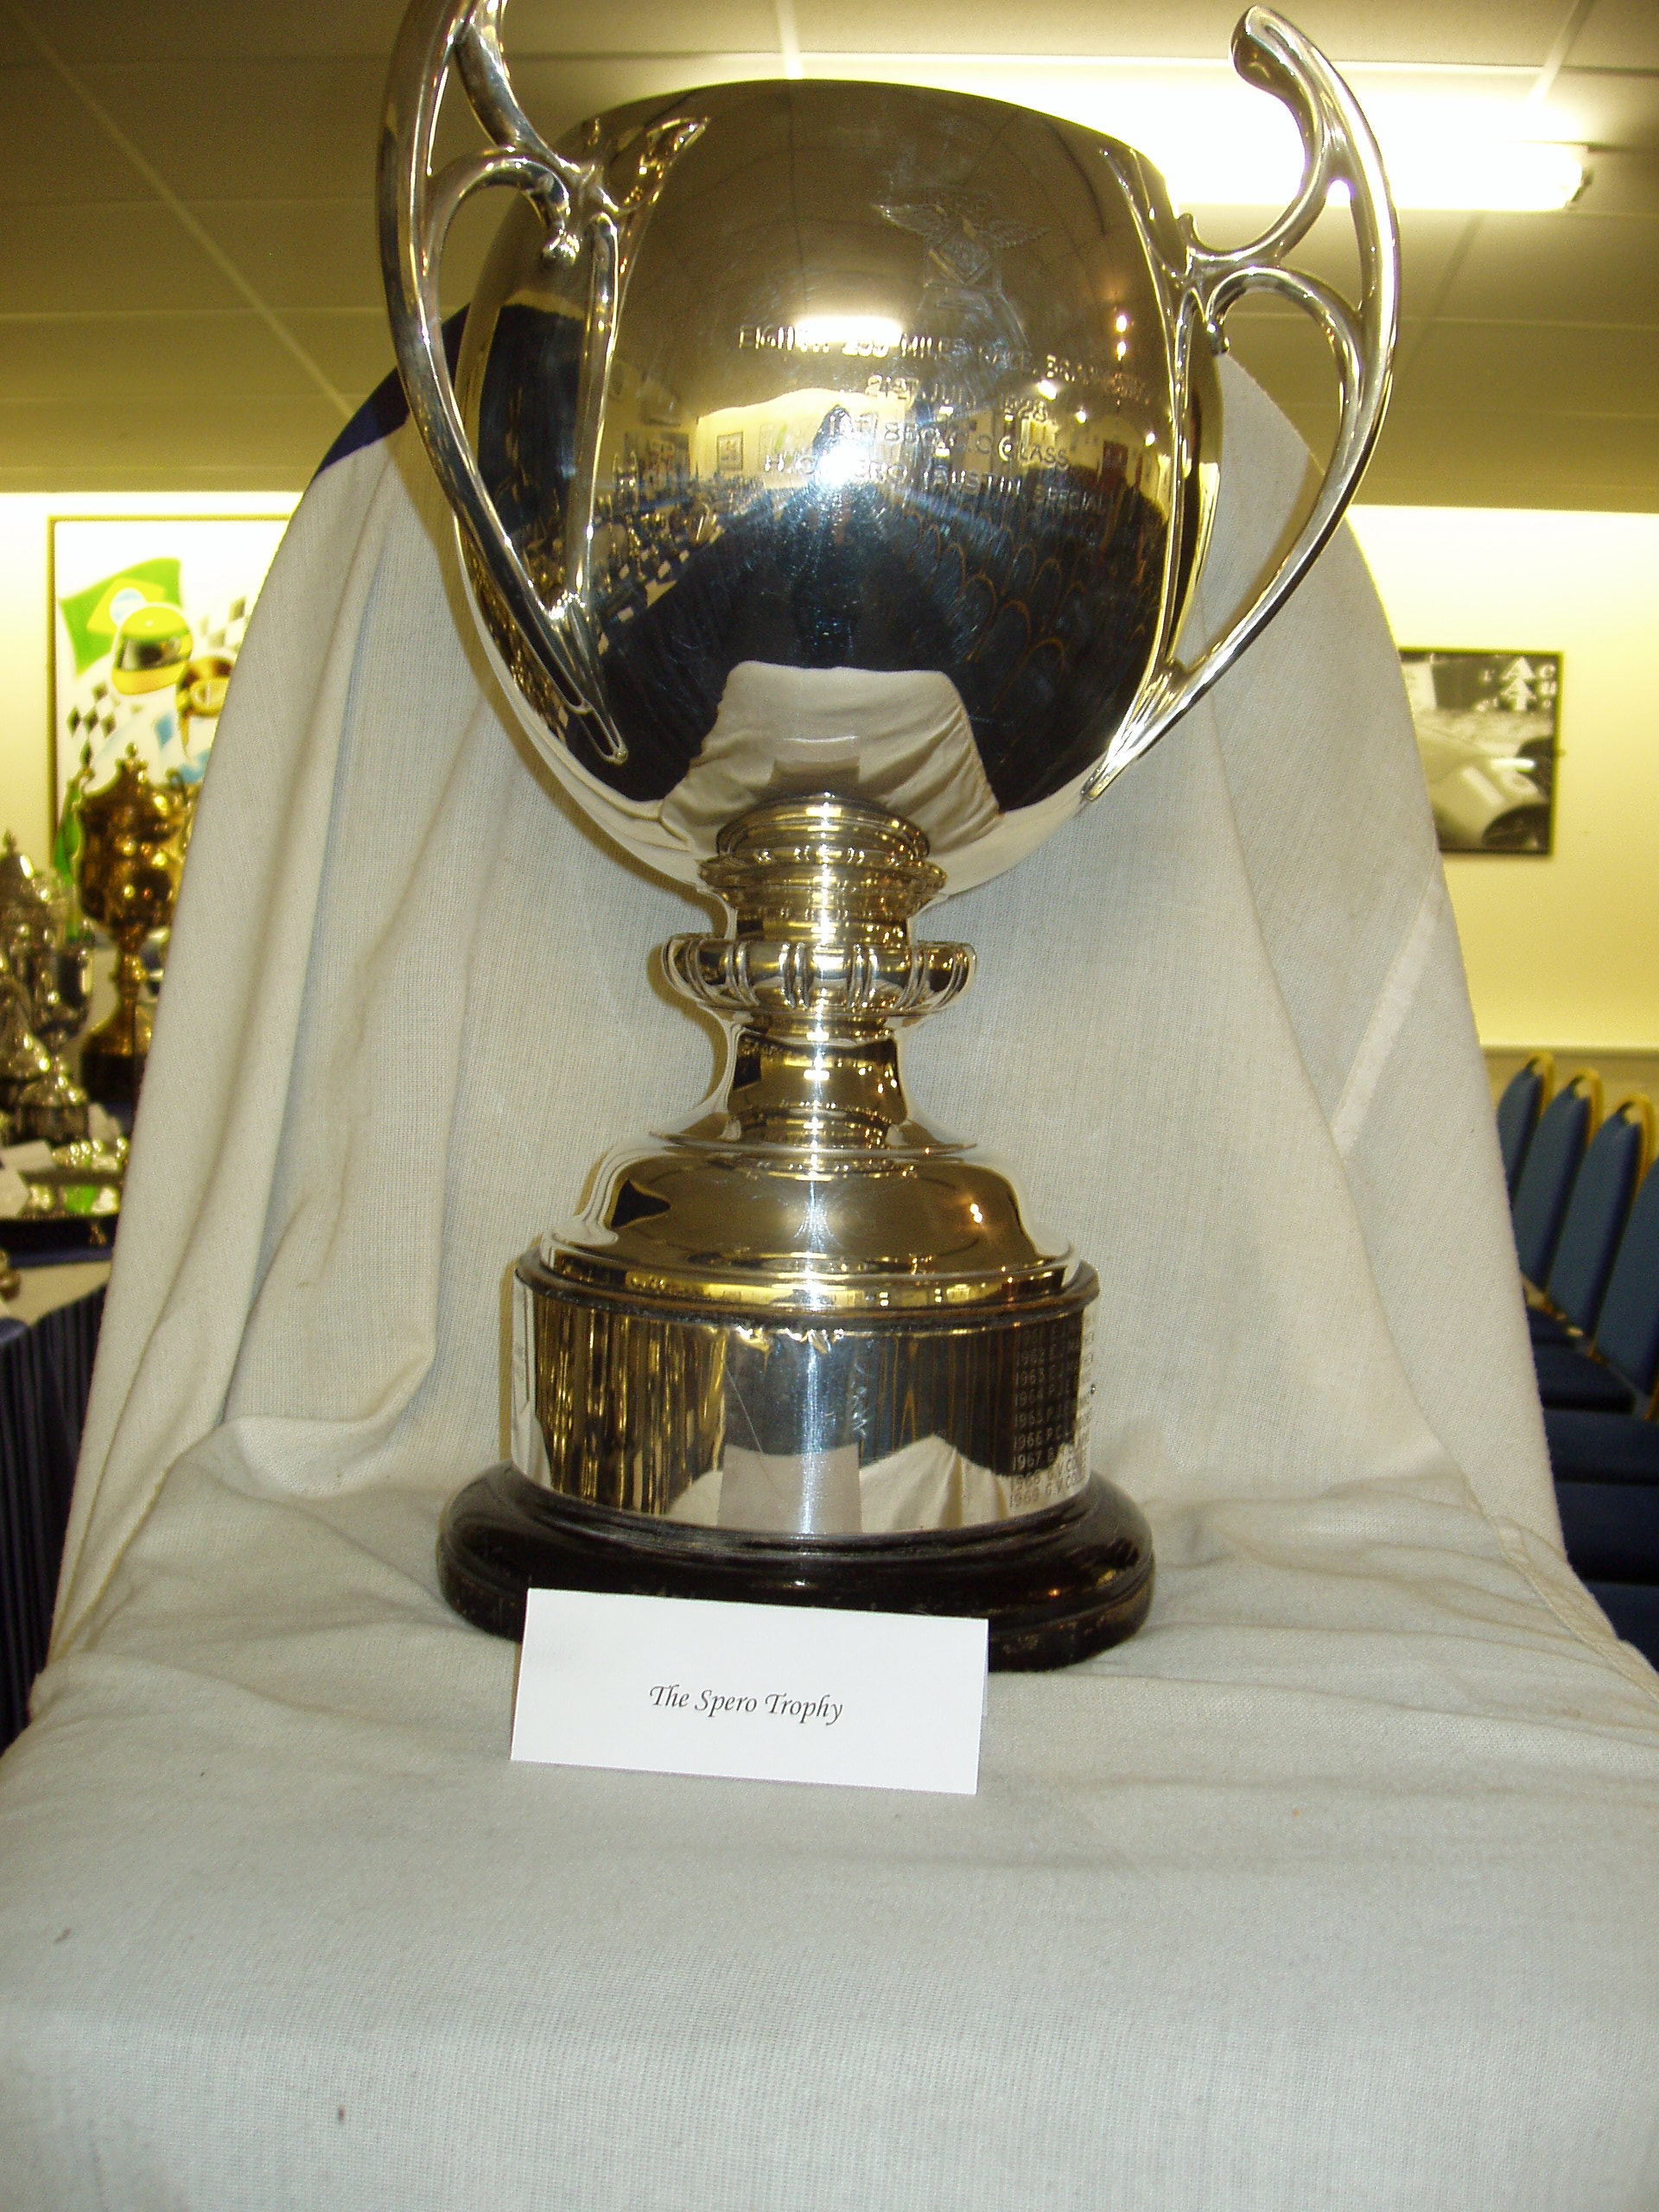 SPERO TROPHY cover